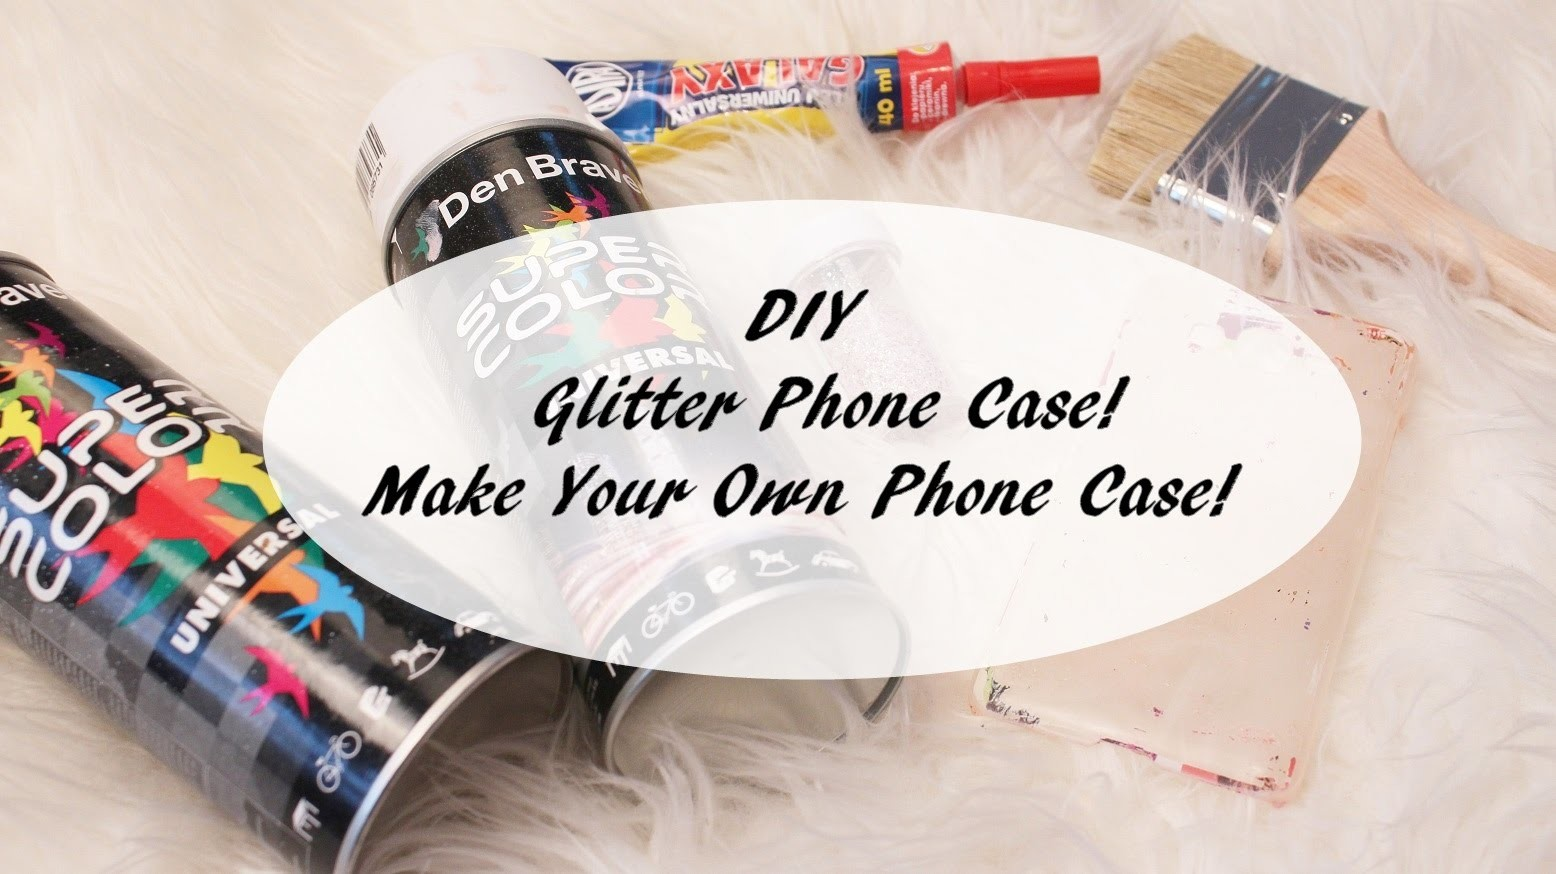 DIY  Glitter Phone Case! | Make Your Own Phone Case! | Cheap & Easy To Make! [AnnaKoper]